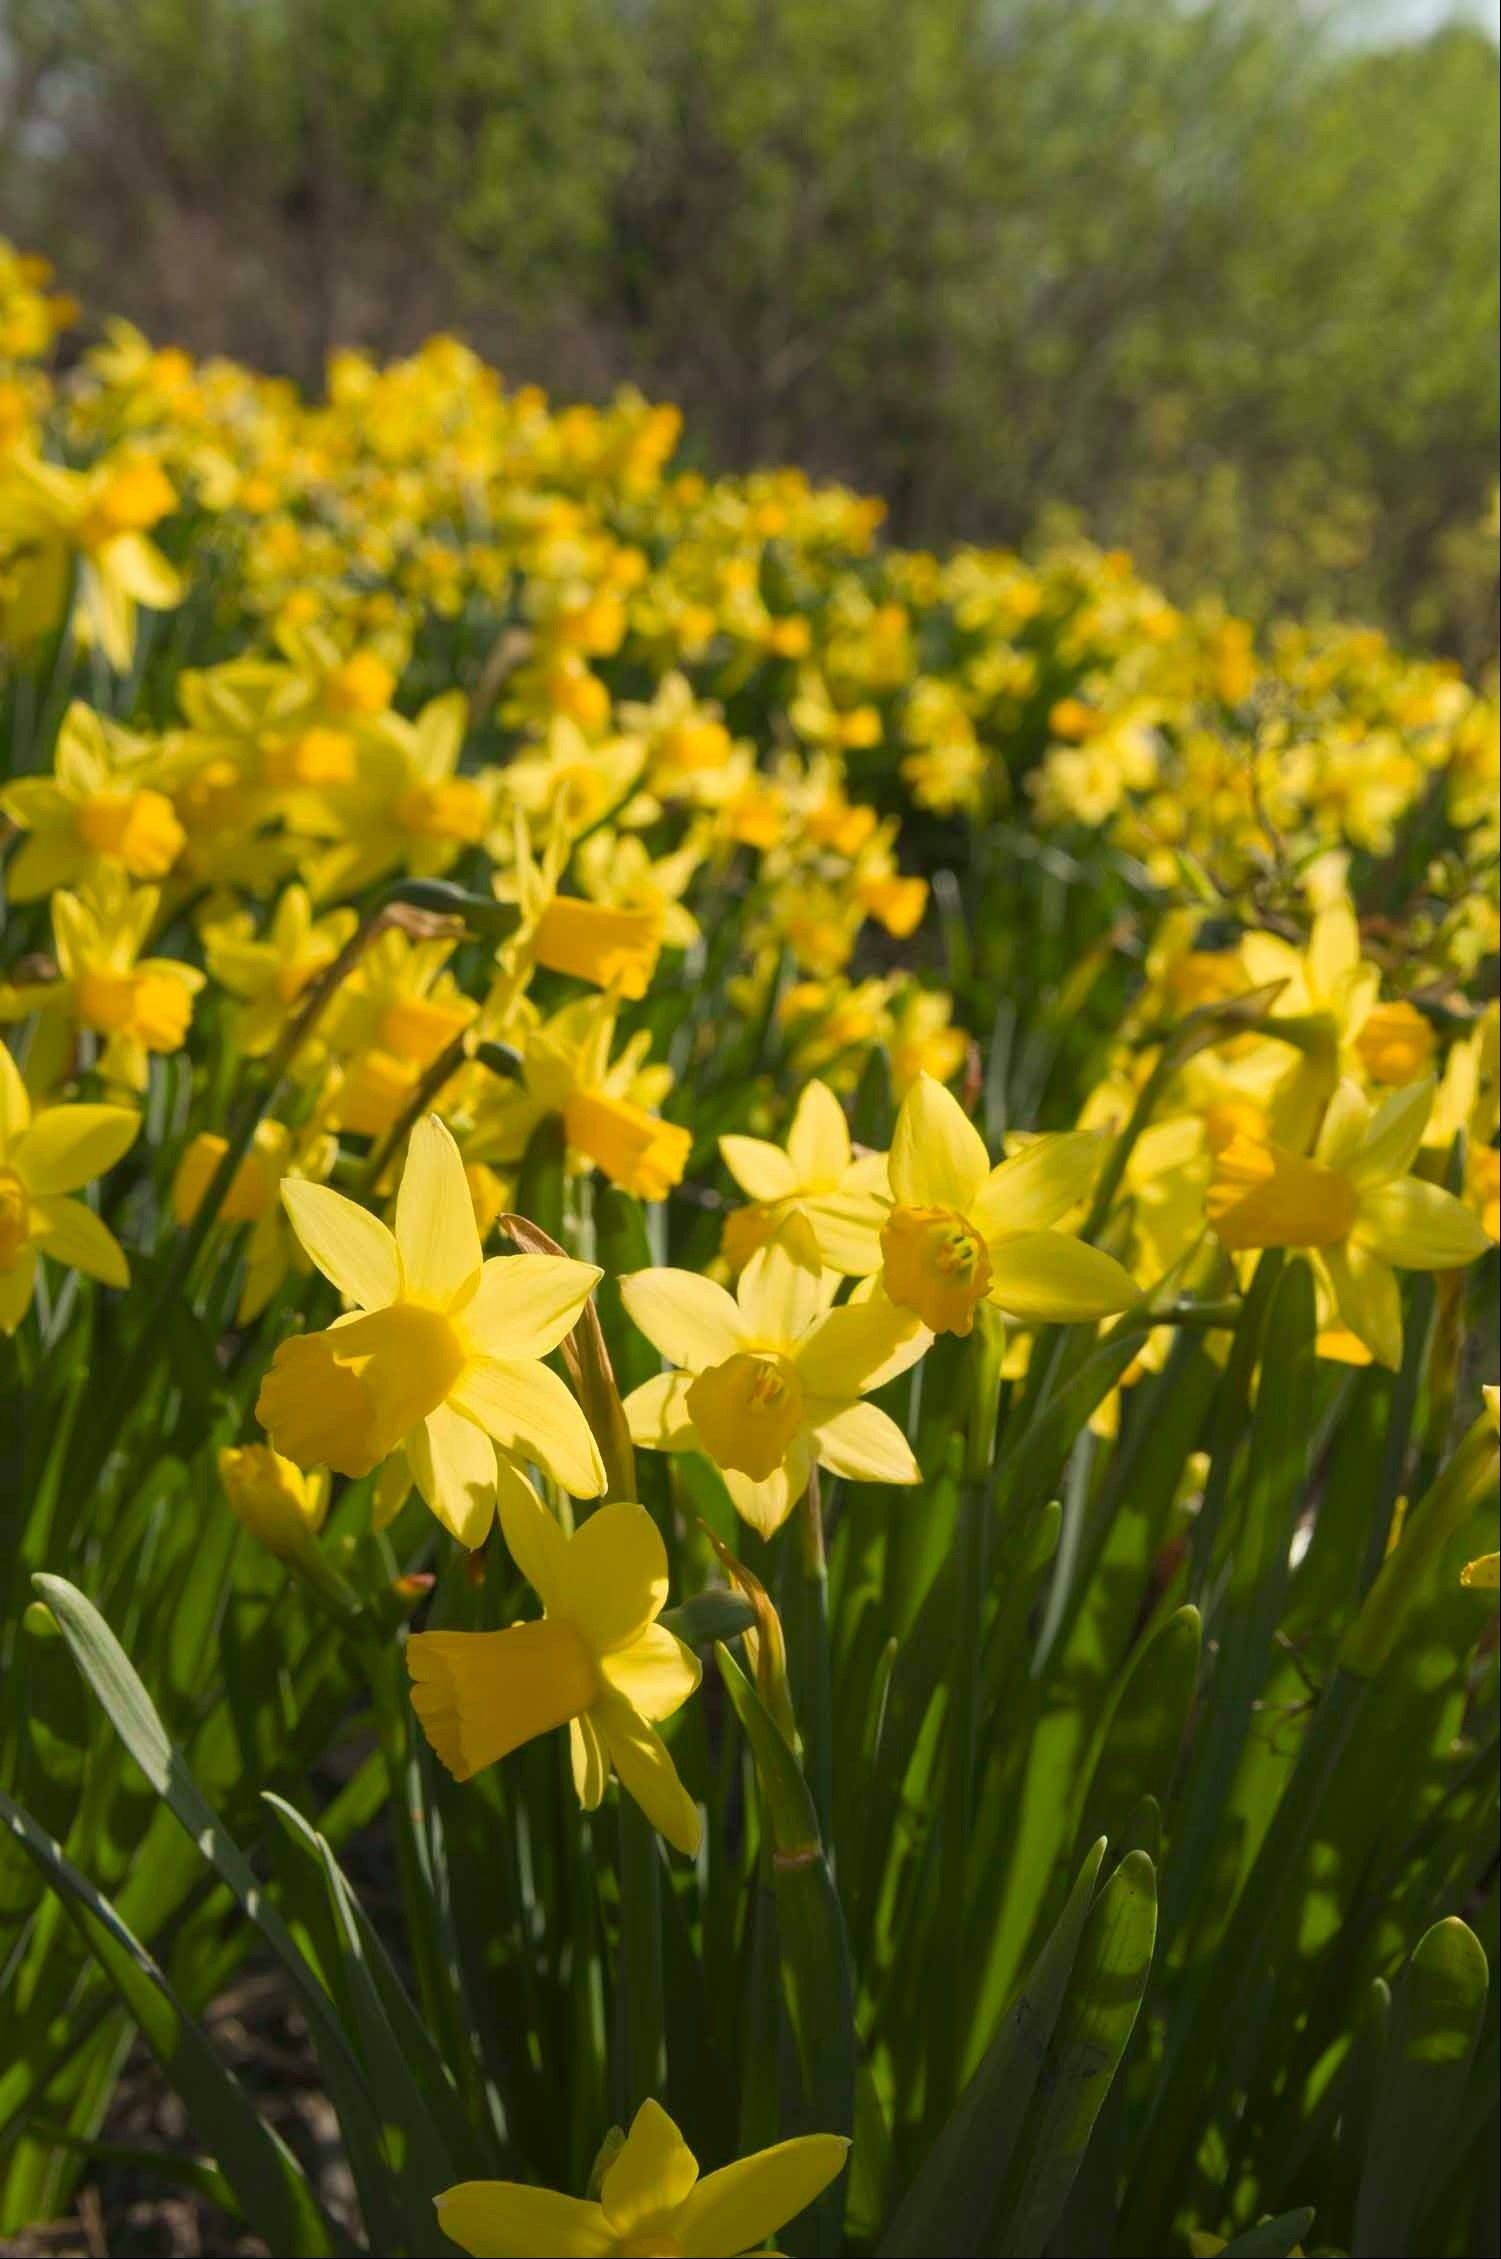 Daffodils are easy to grow and resist foraging from animals.